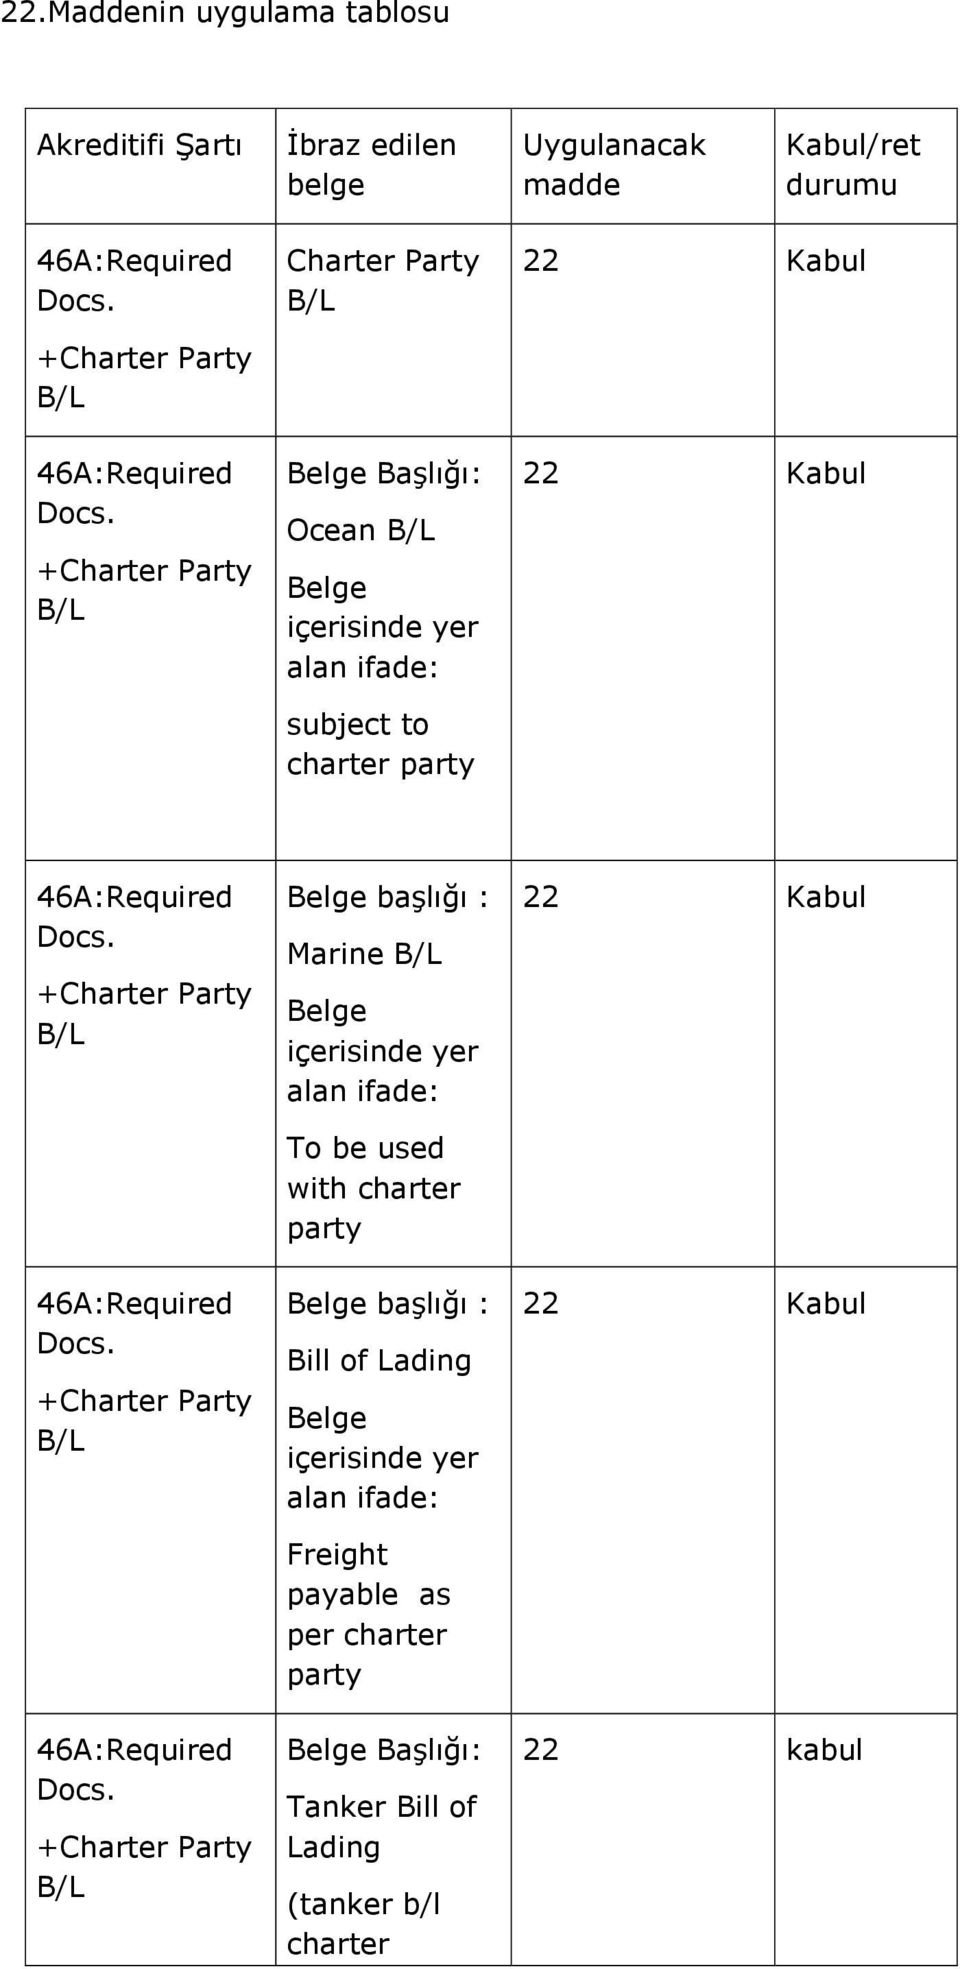 +Charter Party B/L 46A:Required Docs. +Charter Party B/L 46A:Required Docs.